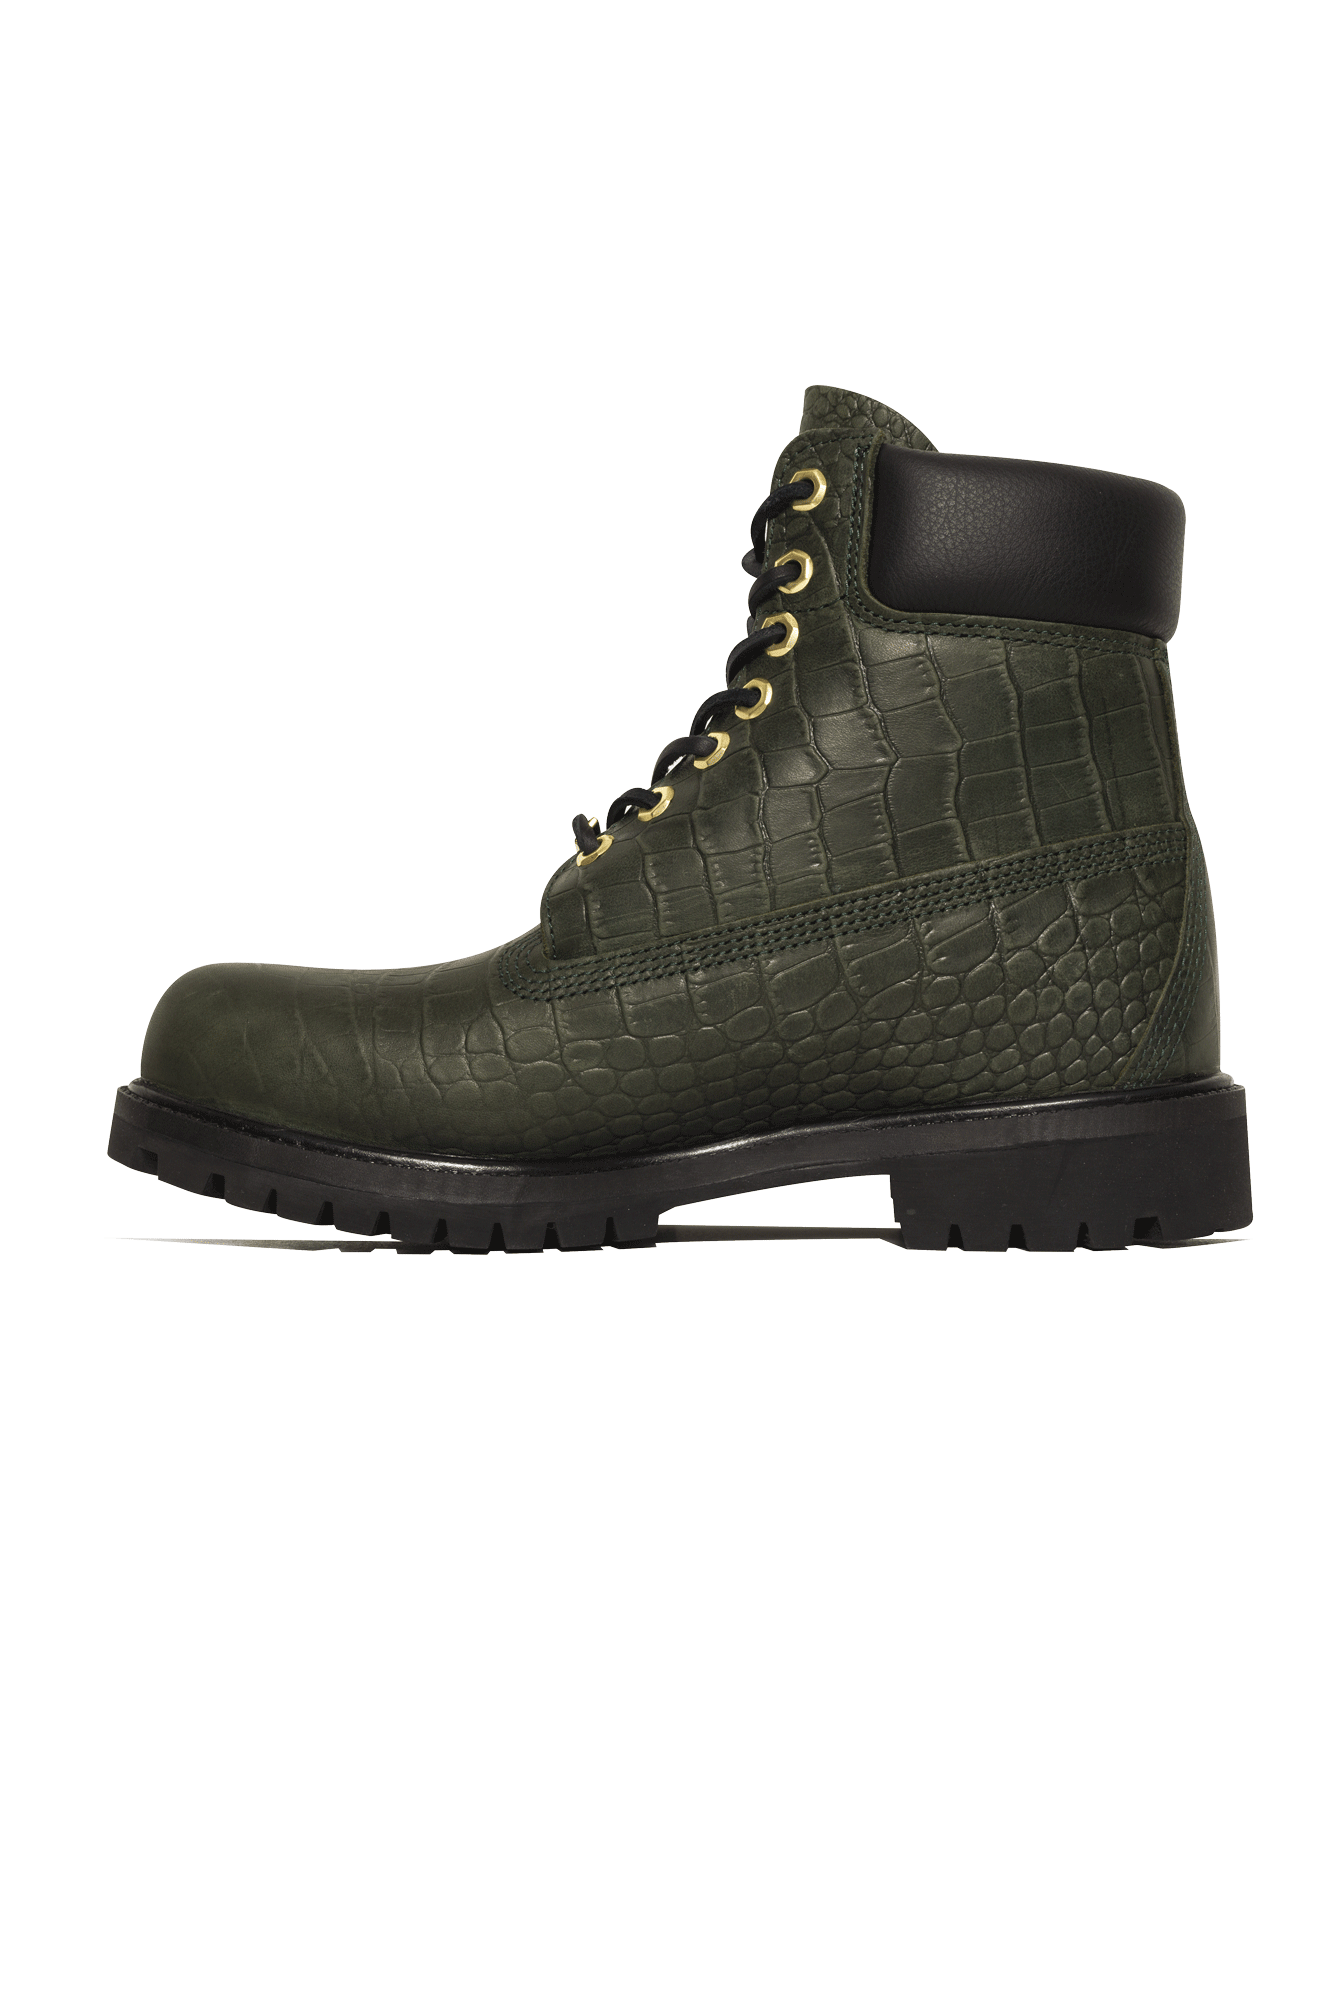 Timberland Boots 6 Inch Premium Boot Green A1PIJ#000#C0013#7